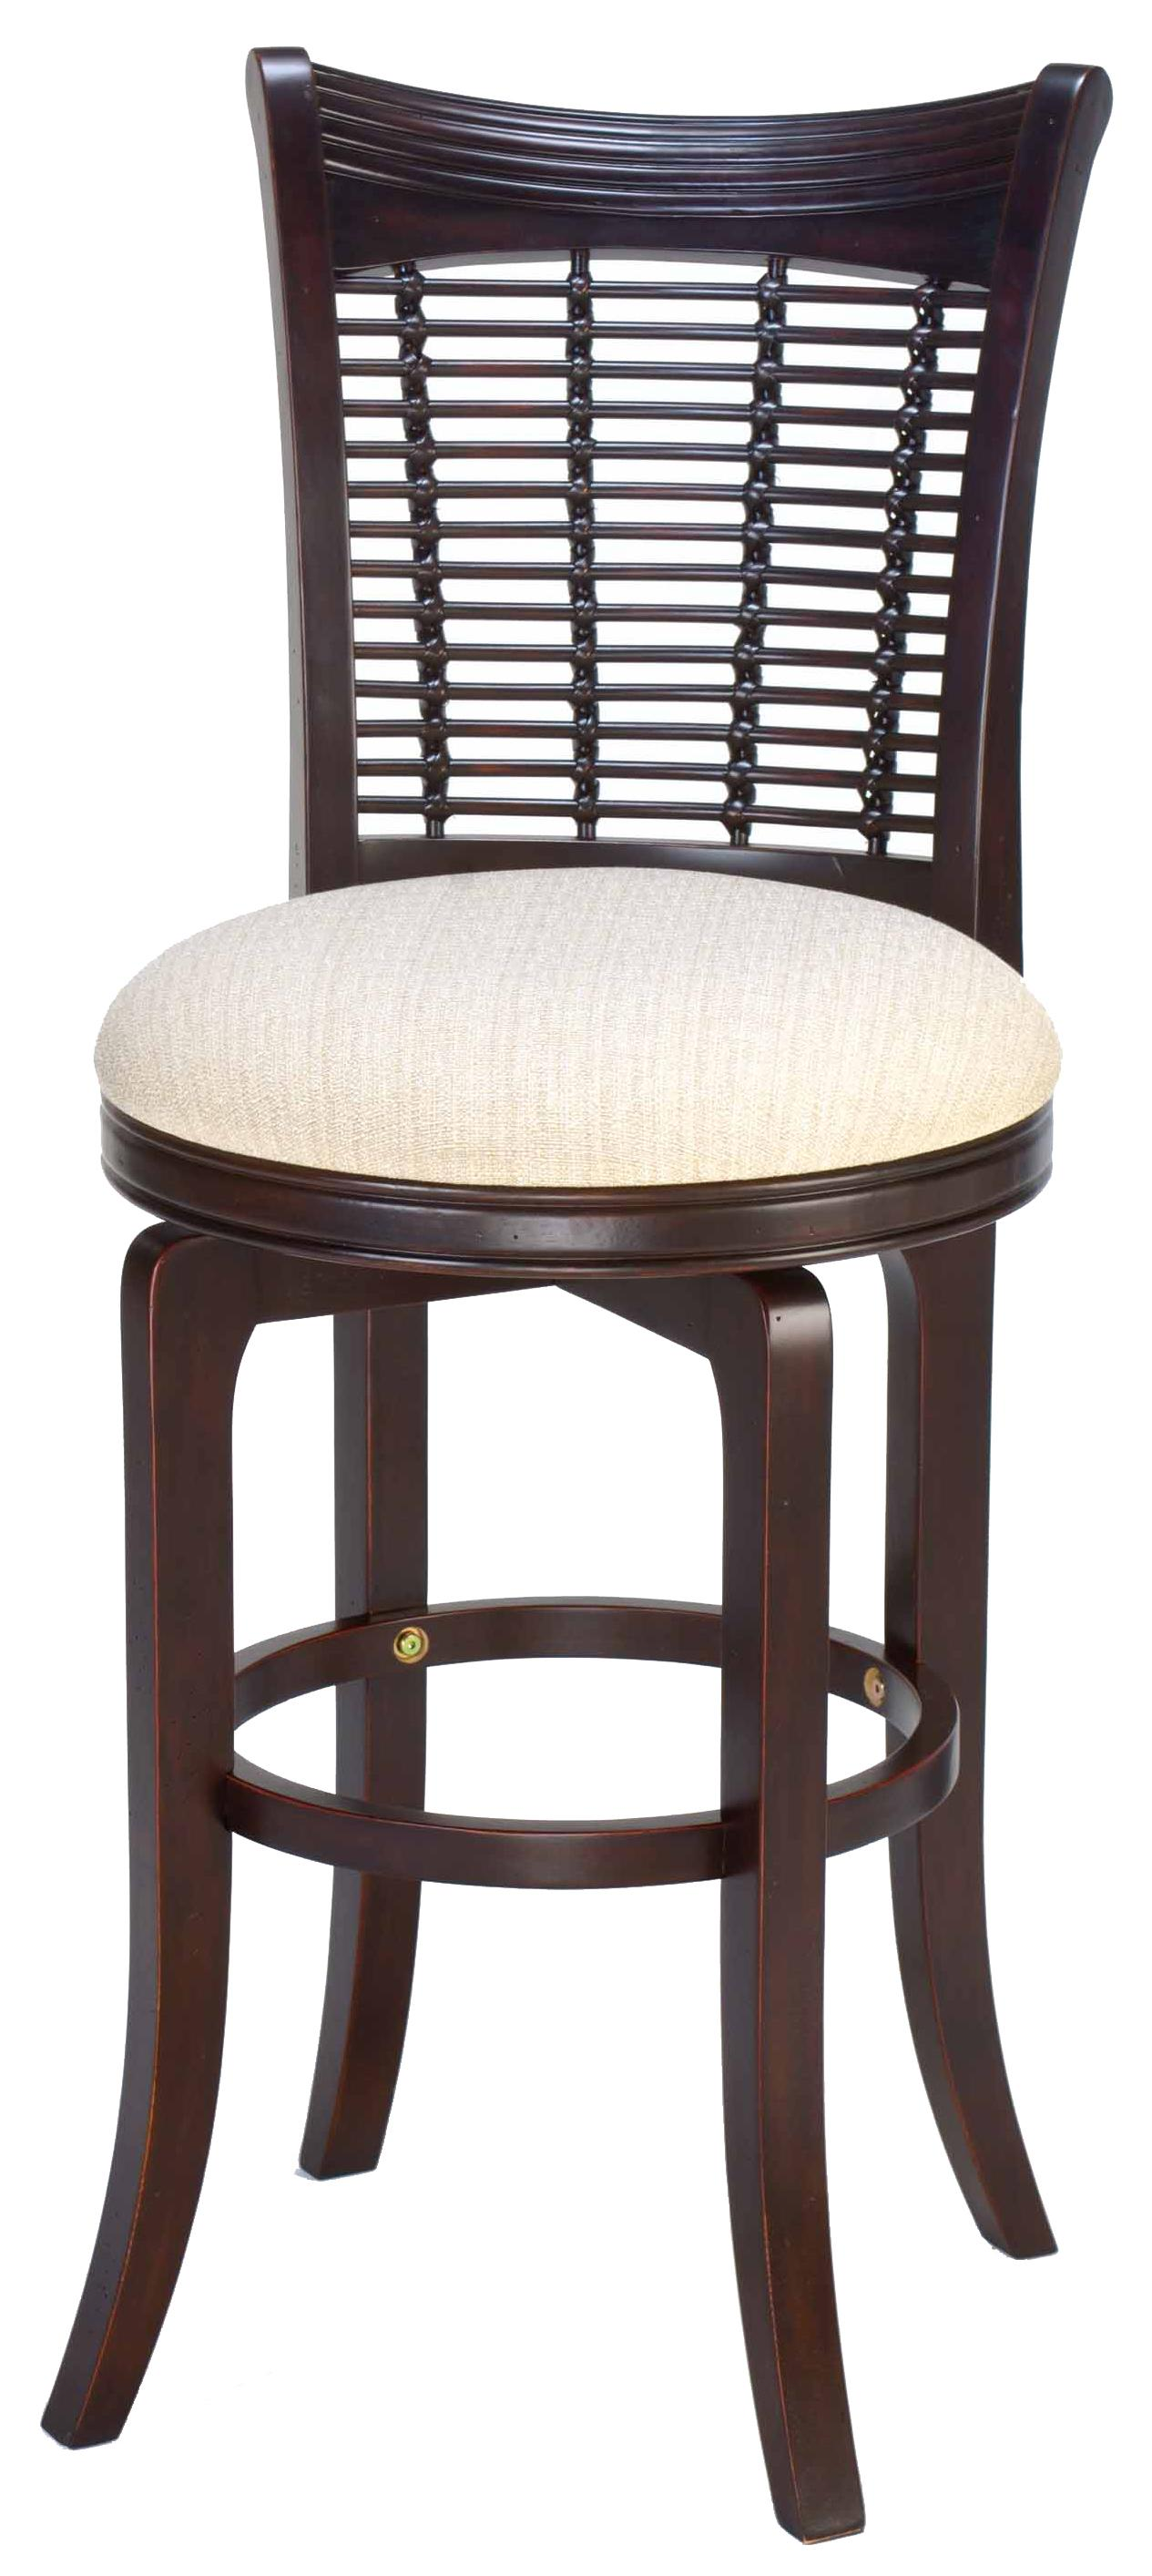 30 Quot Bar Height Bayberry Wicker Swivel Stool By Hillsdale